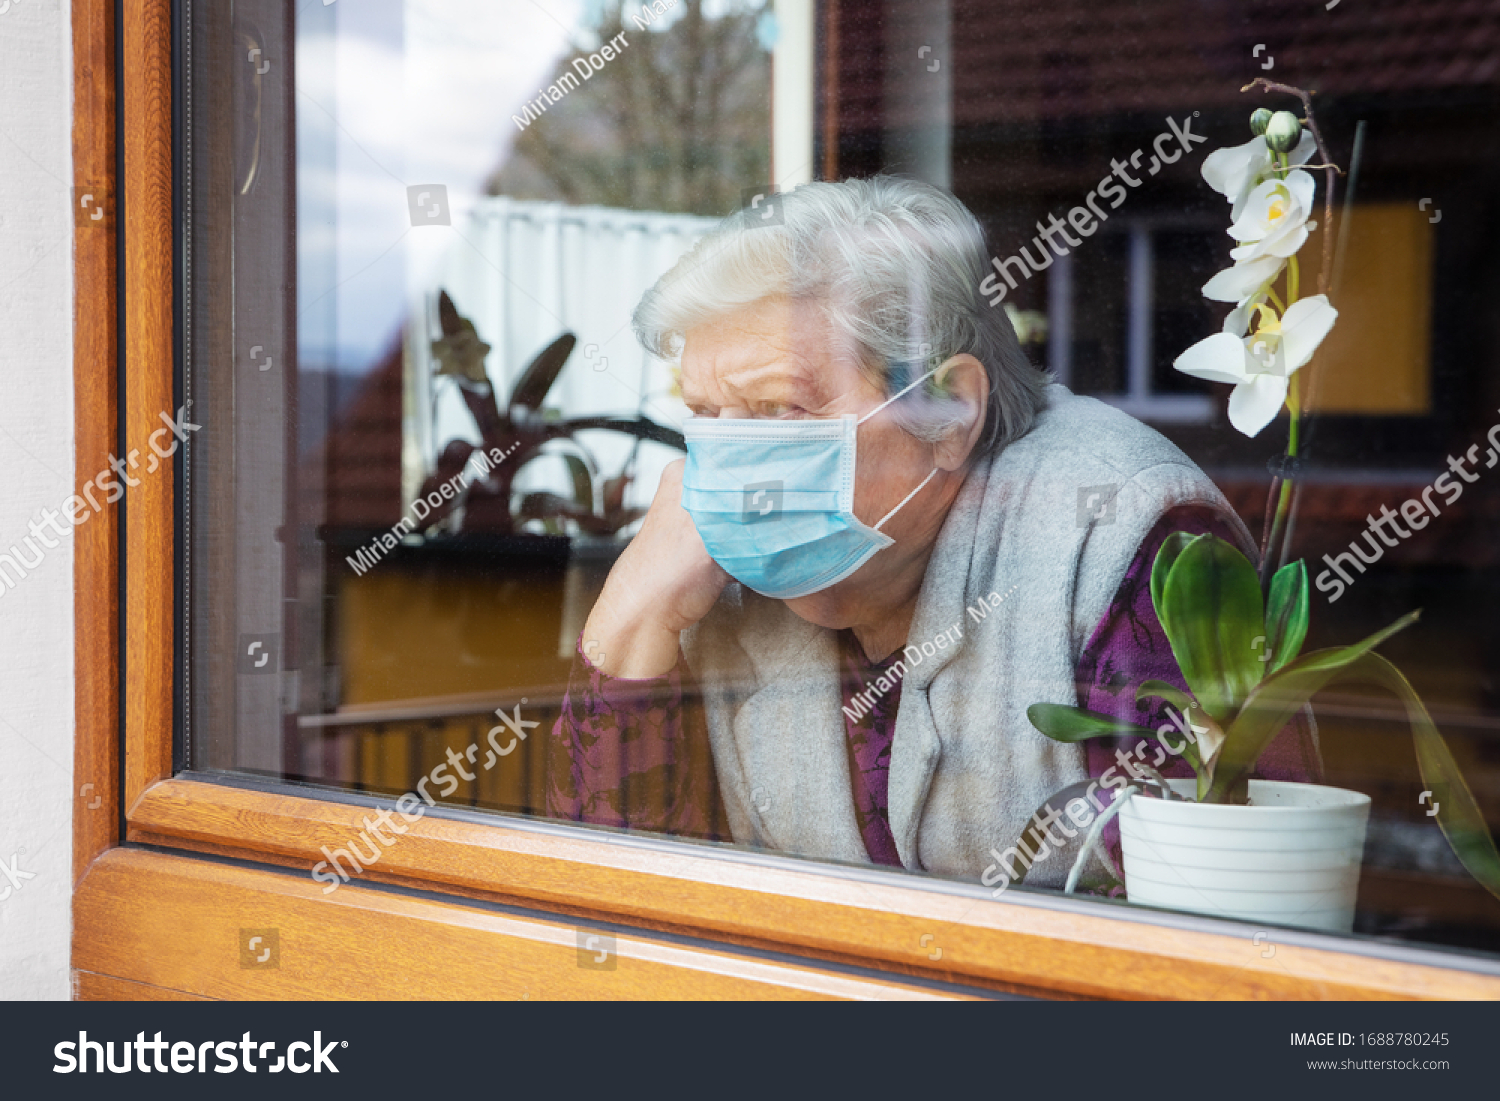 lonely senior woman with surgical mask sitting on a window plane at home, coronavirus and covid-19 provisions #1688780245